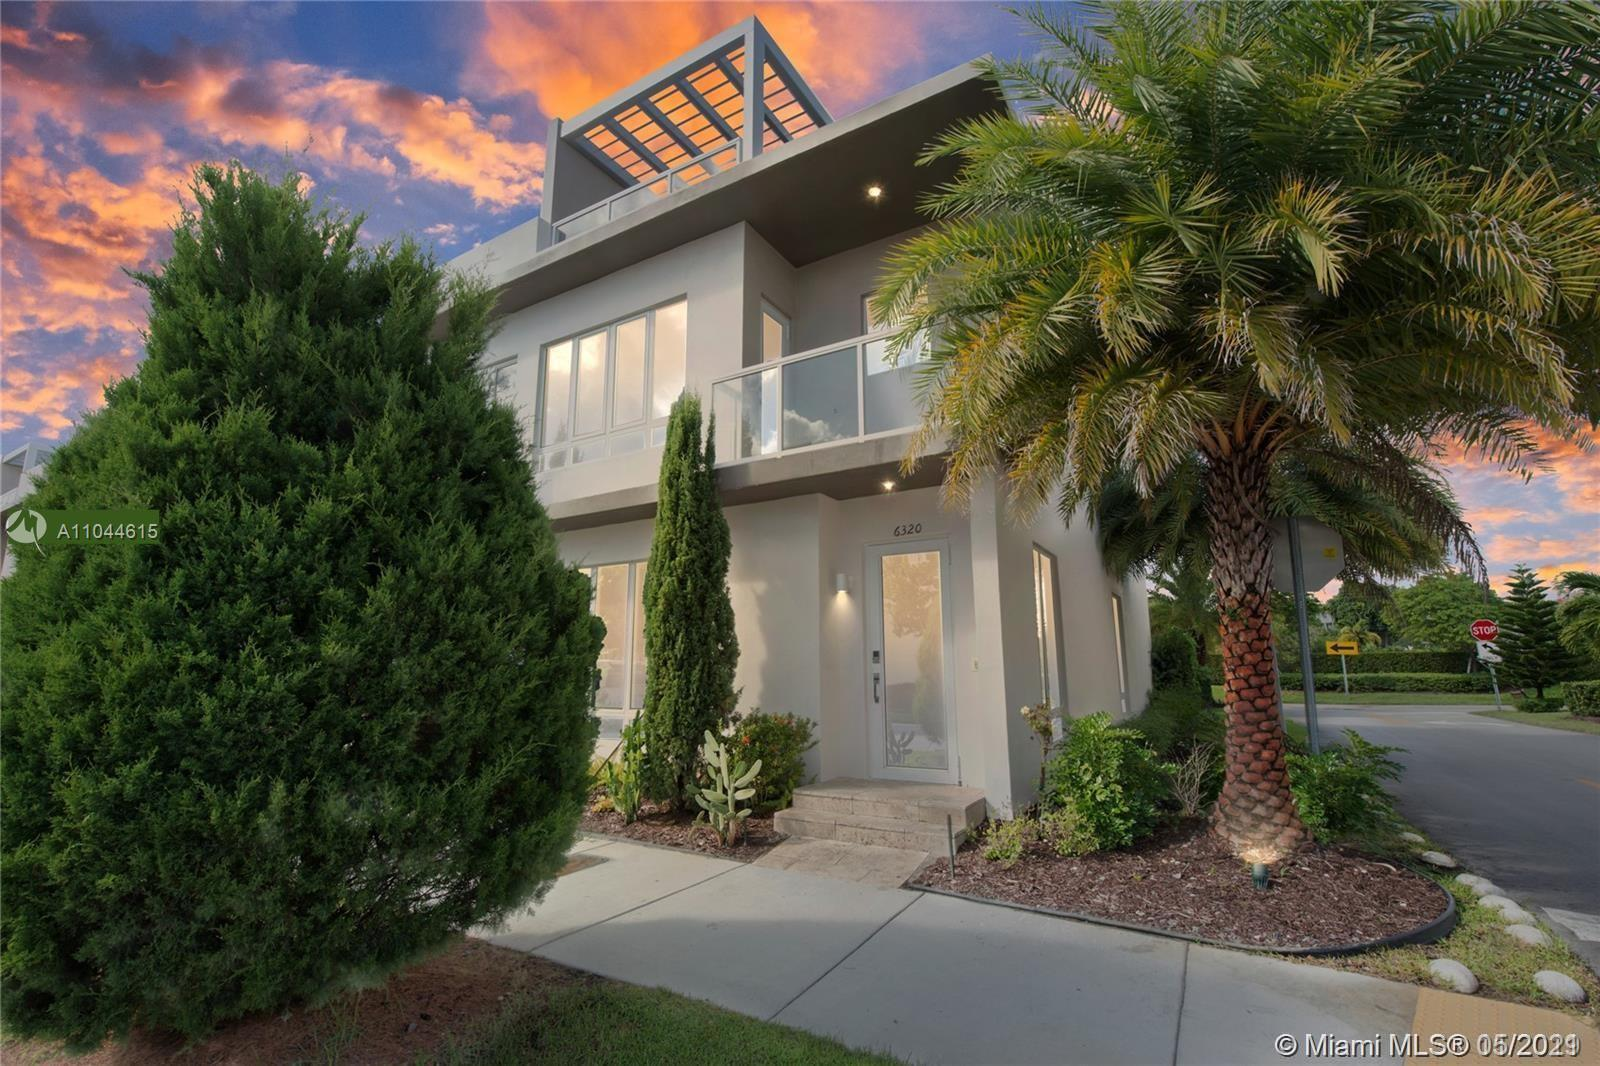 """PLEASE READ --- HOUSE WITH ROOFTOP TERRACE and NEXT-GEN property. Biggest LOT in the condo. Beautiful home in the best community of Doral - """"Landmark"""". Main house with 3 spacious bedrooms & 3.5 modern bathrooms. External efficiency with independent entrance with 1-bedroom area + bathroom + kitchenette + washer/Dryer combo. High end appliances and quartz countertops in kitchen and baths. House is rented until Feb 2022 for $3400 and studio for $1350. Plenty of upside to rent the house for up to +$4,000 just the main house plus next-gen income. Great income producing property. Lowest HOA in the area - only $265. Send offer before looking at the house. House has new blinds not shown on the pictures. Owner ready to sell."""